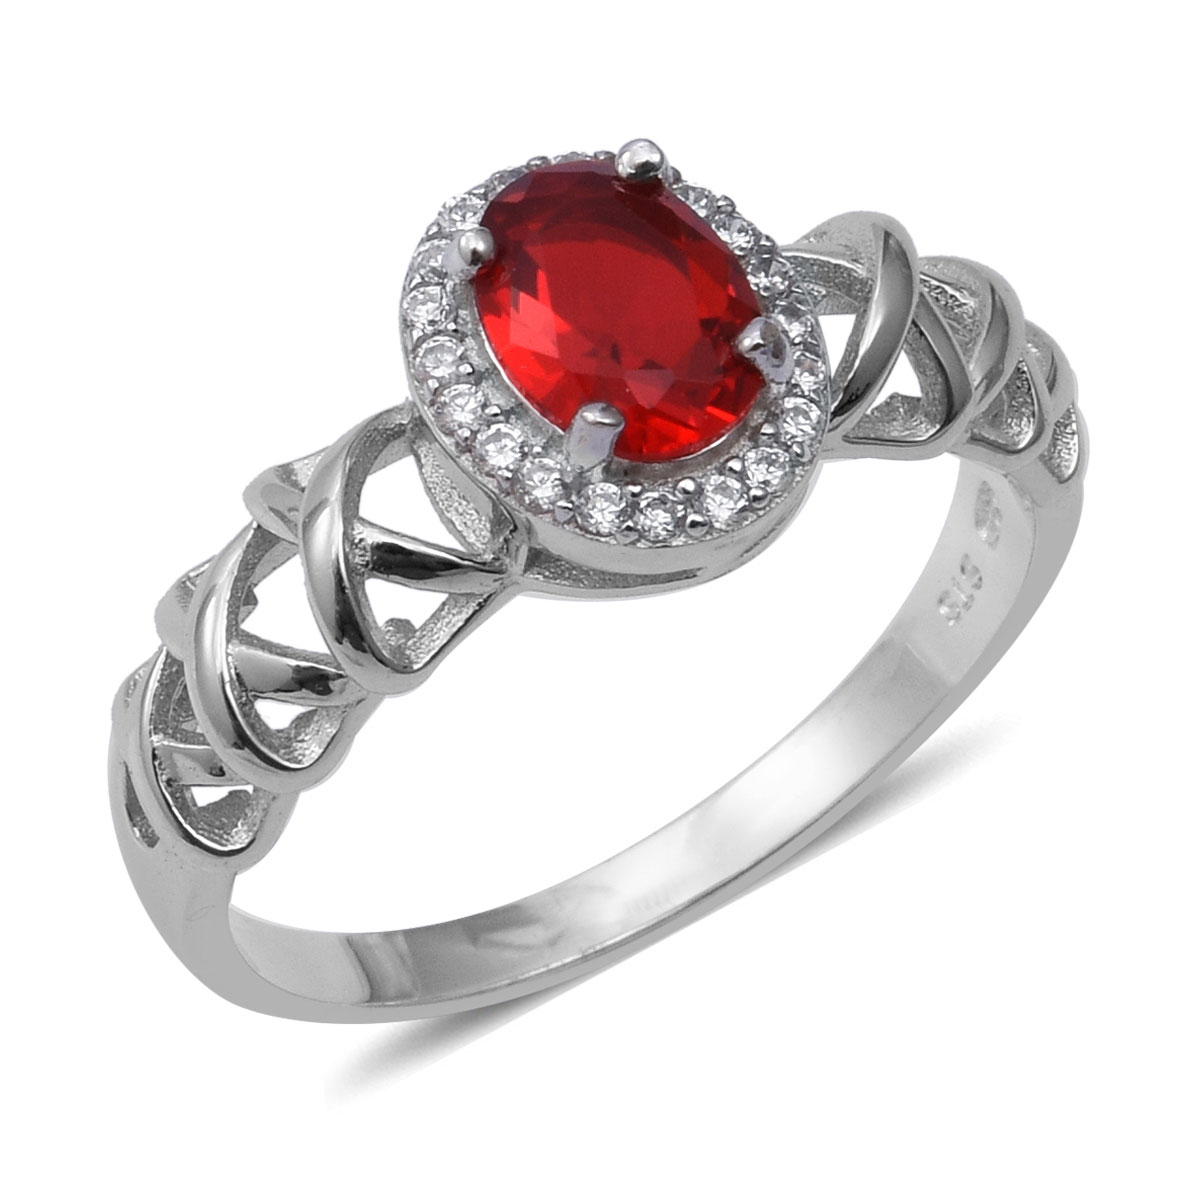 Criss-Cross Shank Halo Ring 925 Sterling Silver Cubic Zircon Red Cubic Zirconia CZ Jewelry for Women Size 7 Ct 1.5